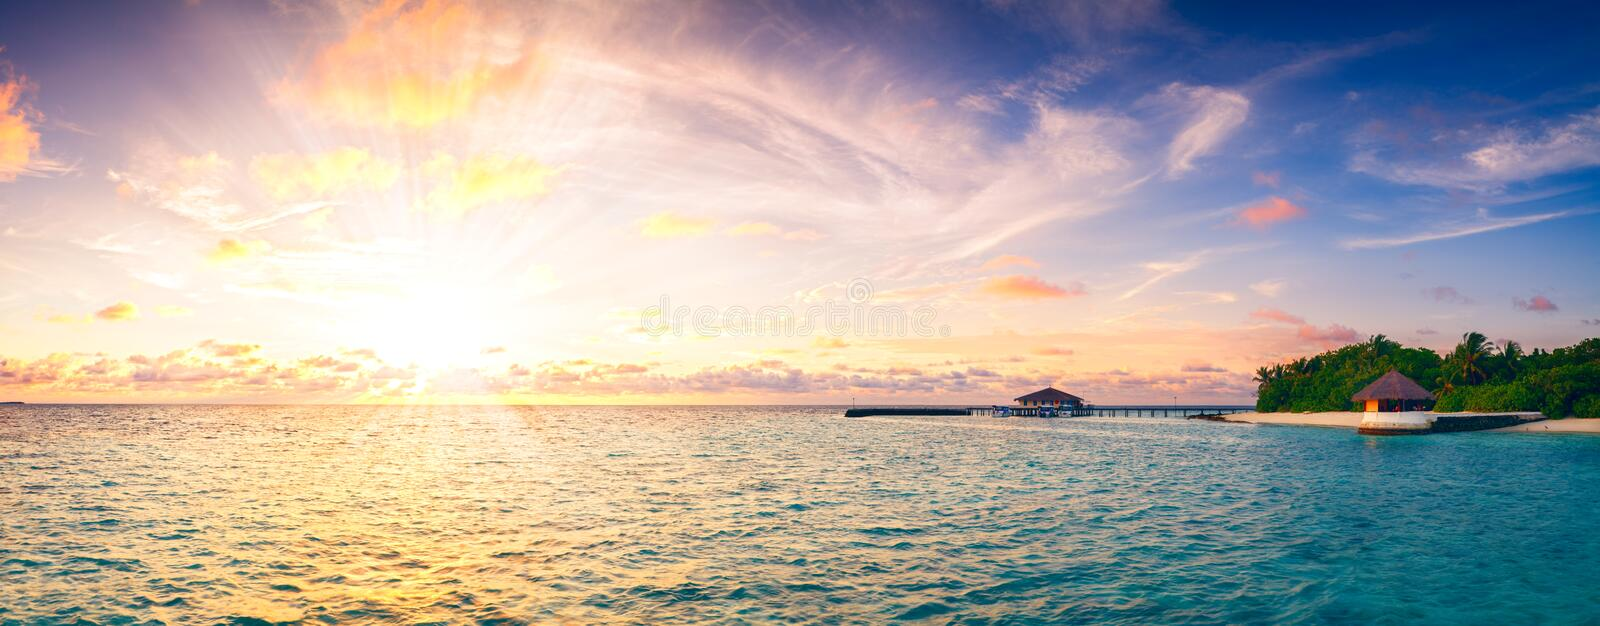 Beautiful sunset over ocean island maldives long panorama retro vintage style background royalty free stock photo